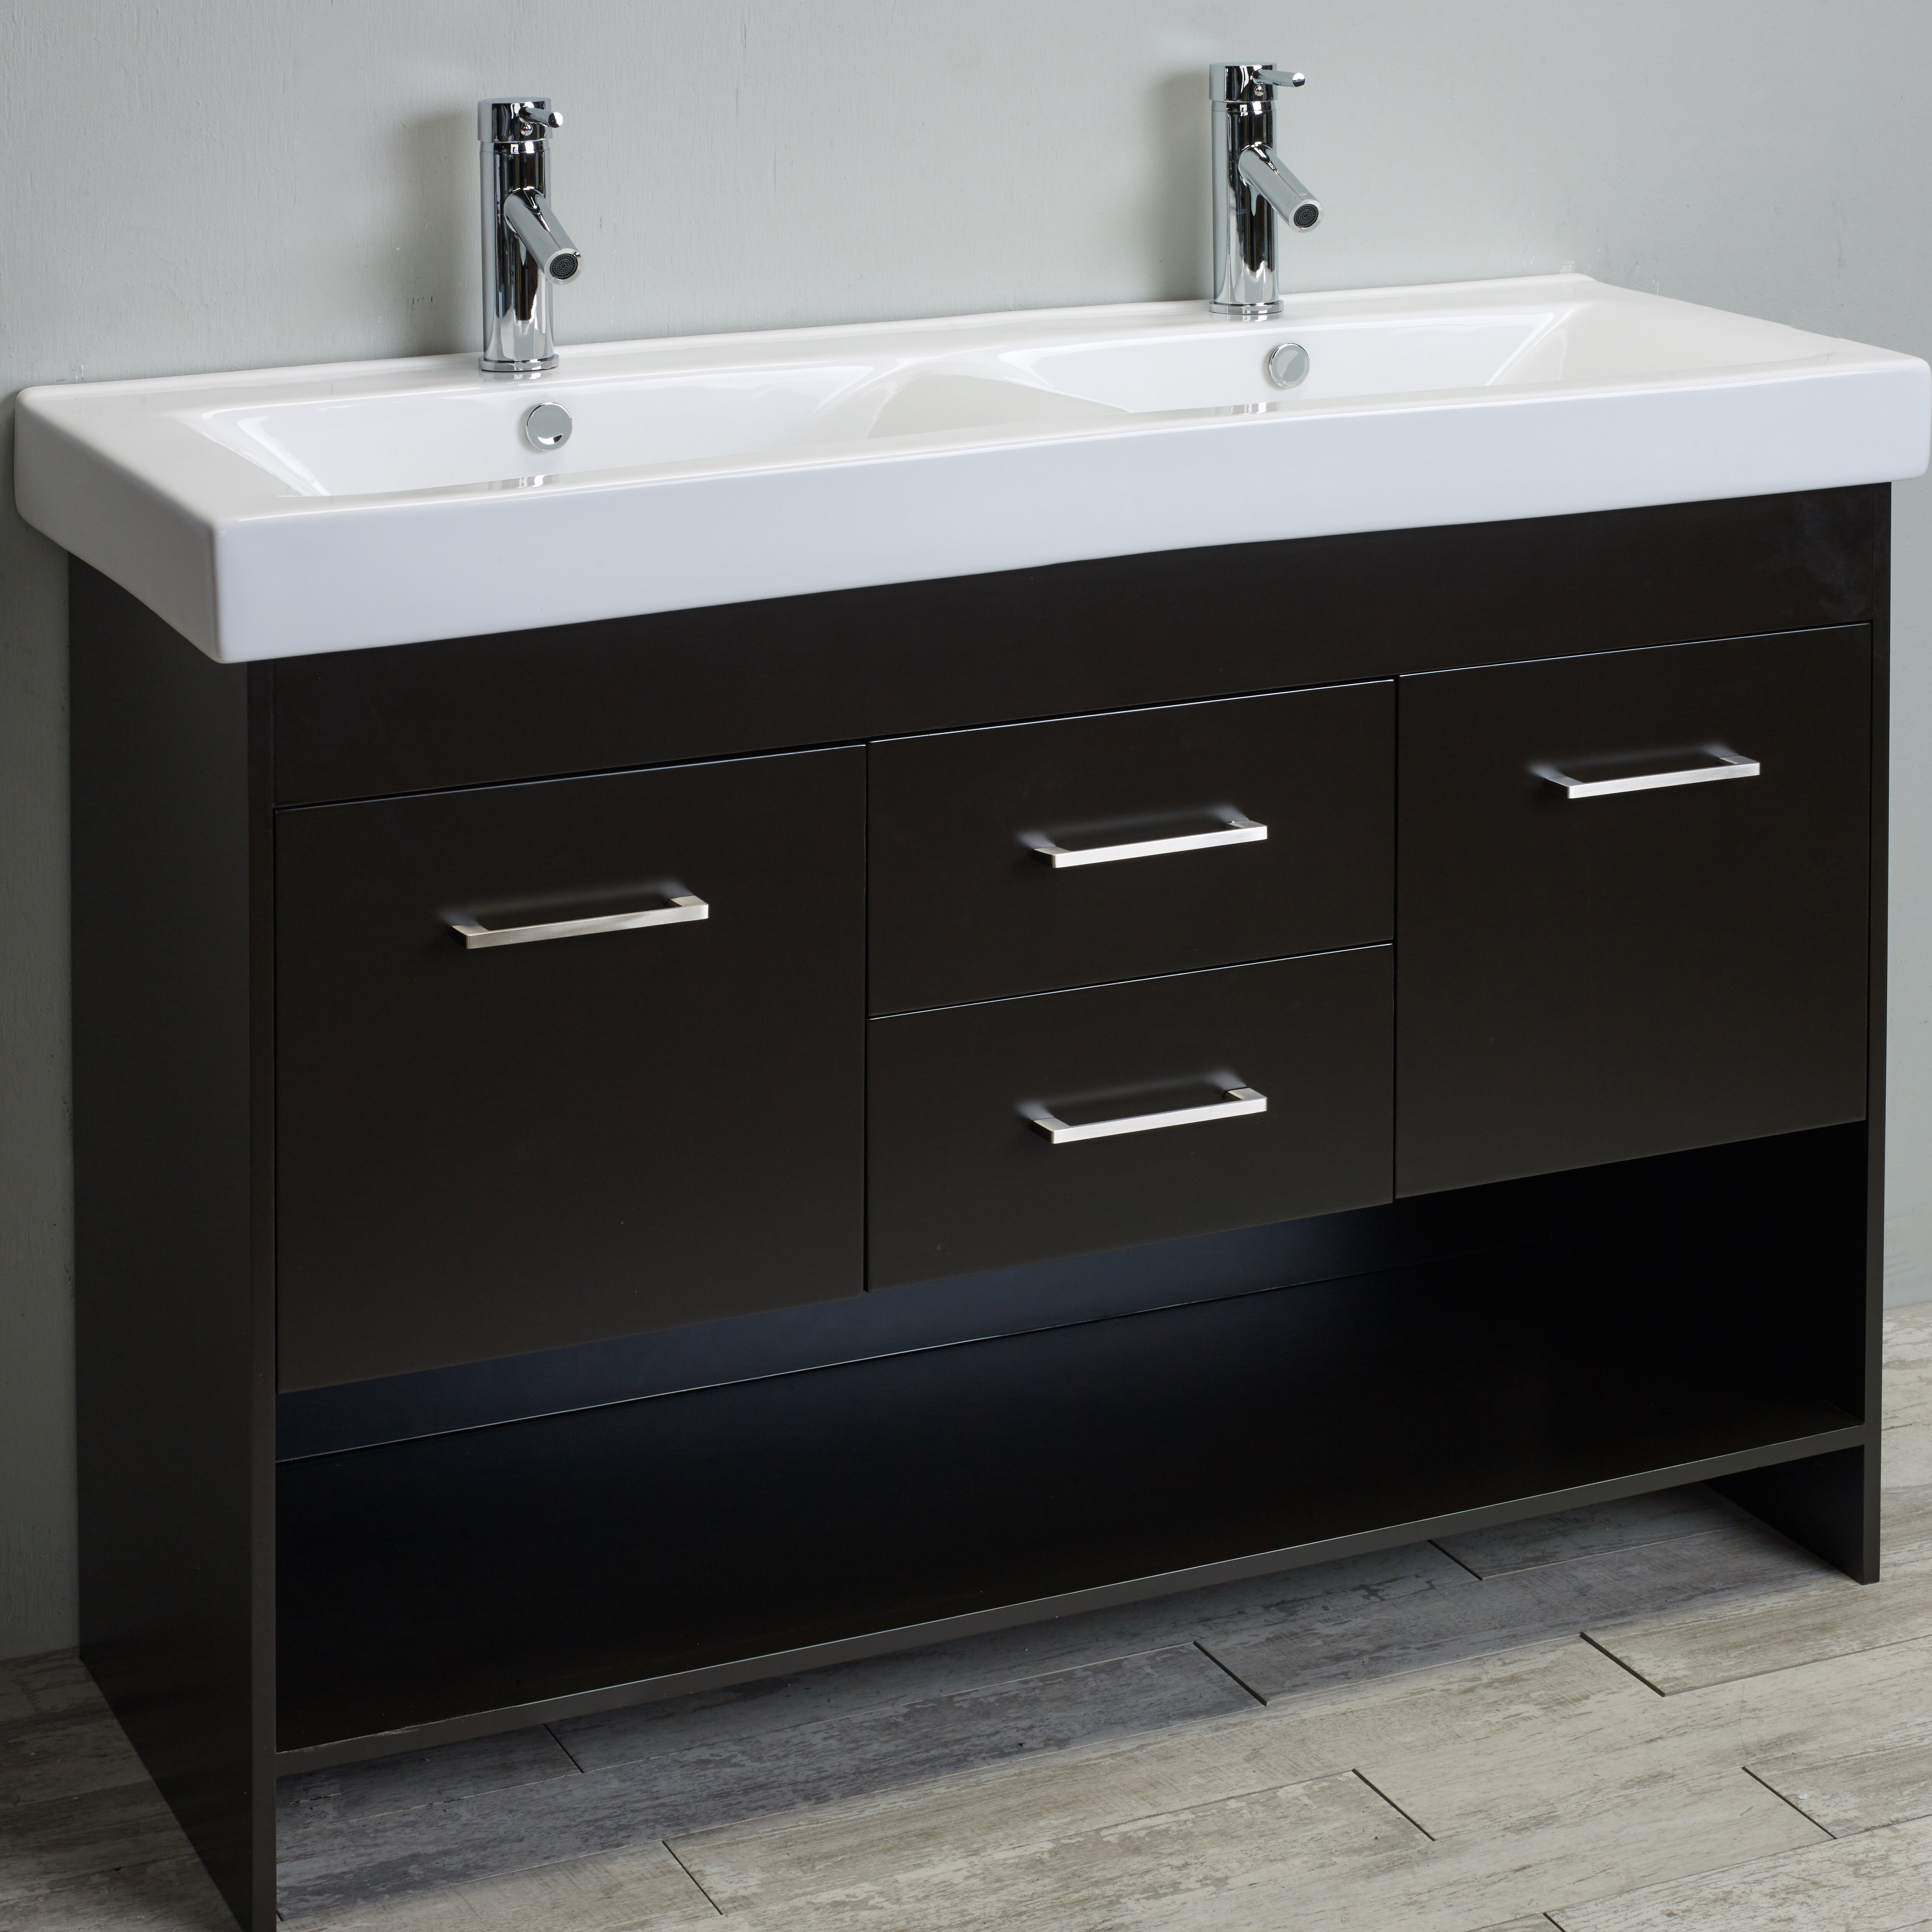 eviva gloria 48 espresso double bathroom vanity set with white integrated double porcelain sink. Black Bedroom Furniture Sets. Home Design Ideas